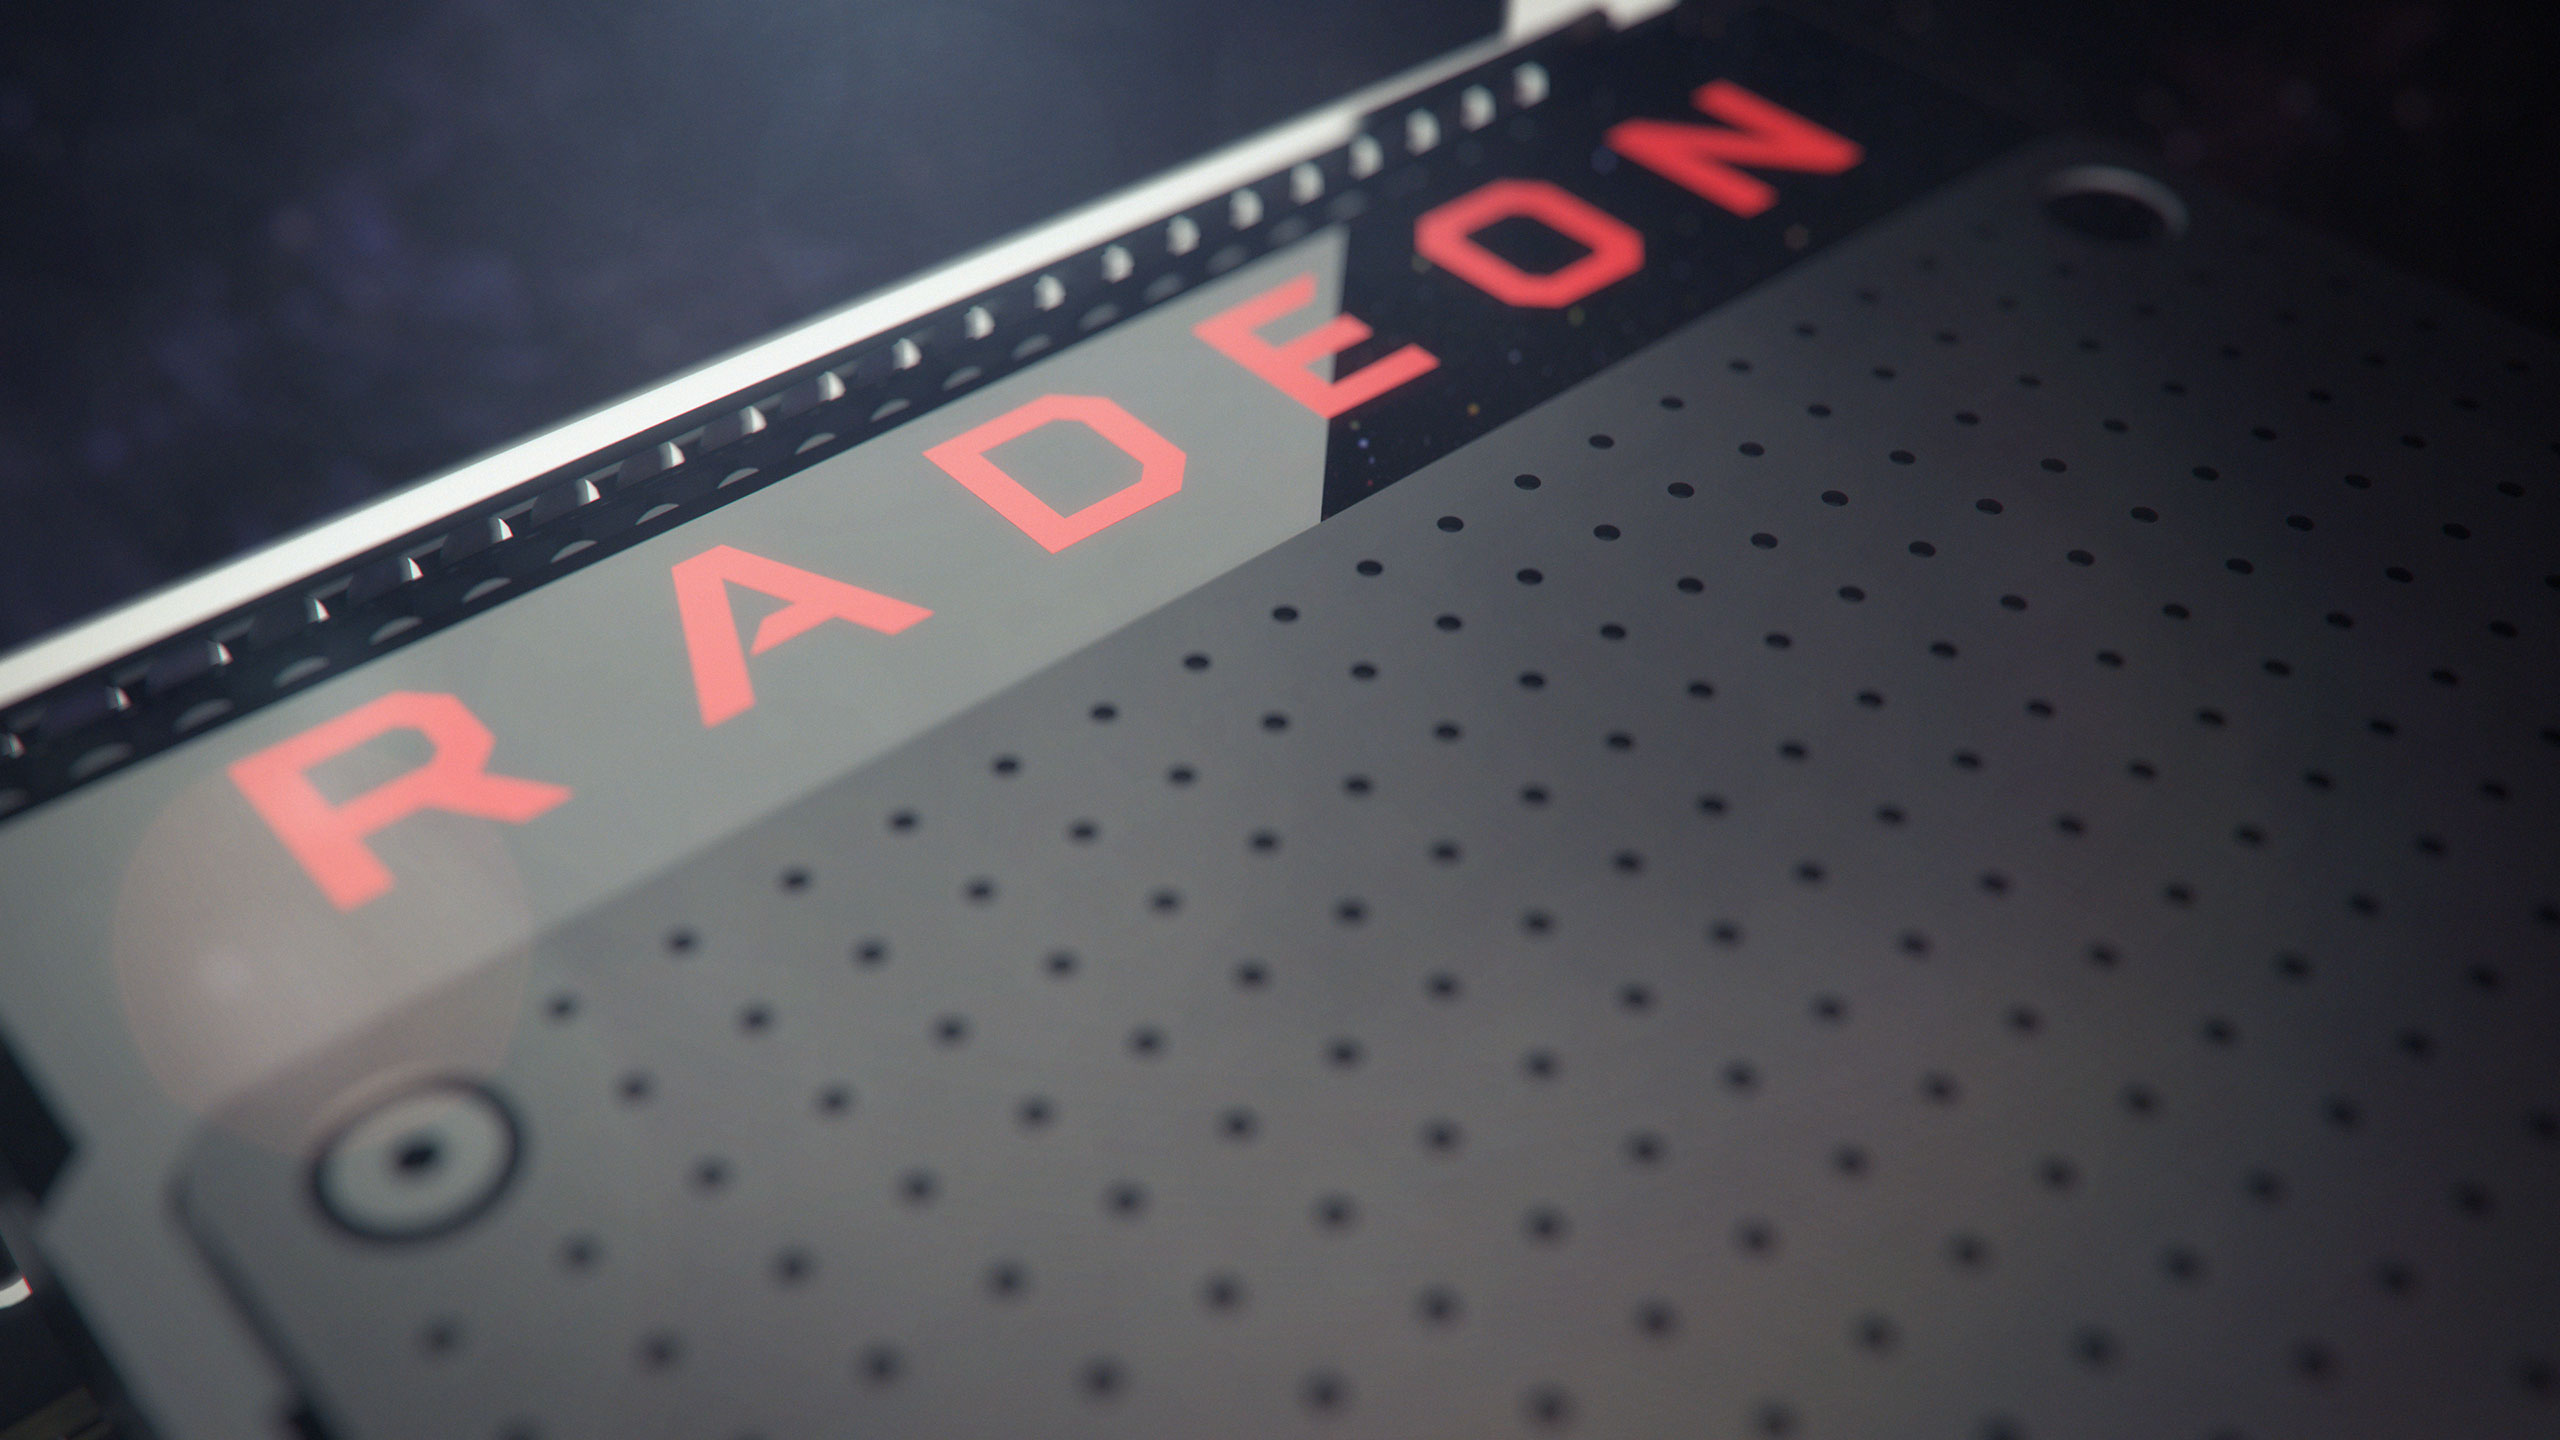 Streaming, video capture, and more features added to AMD Radeon